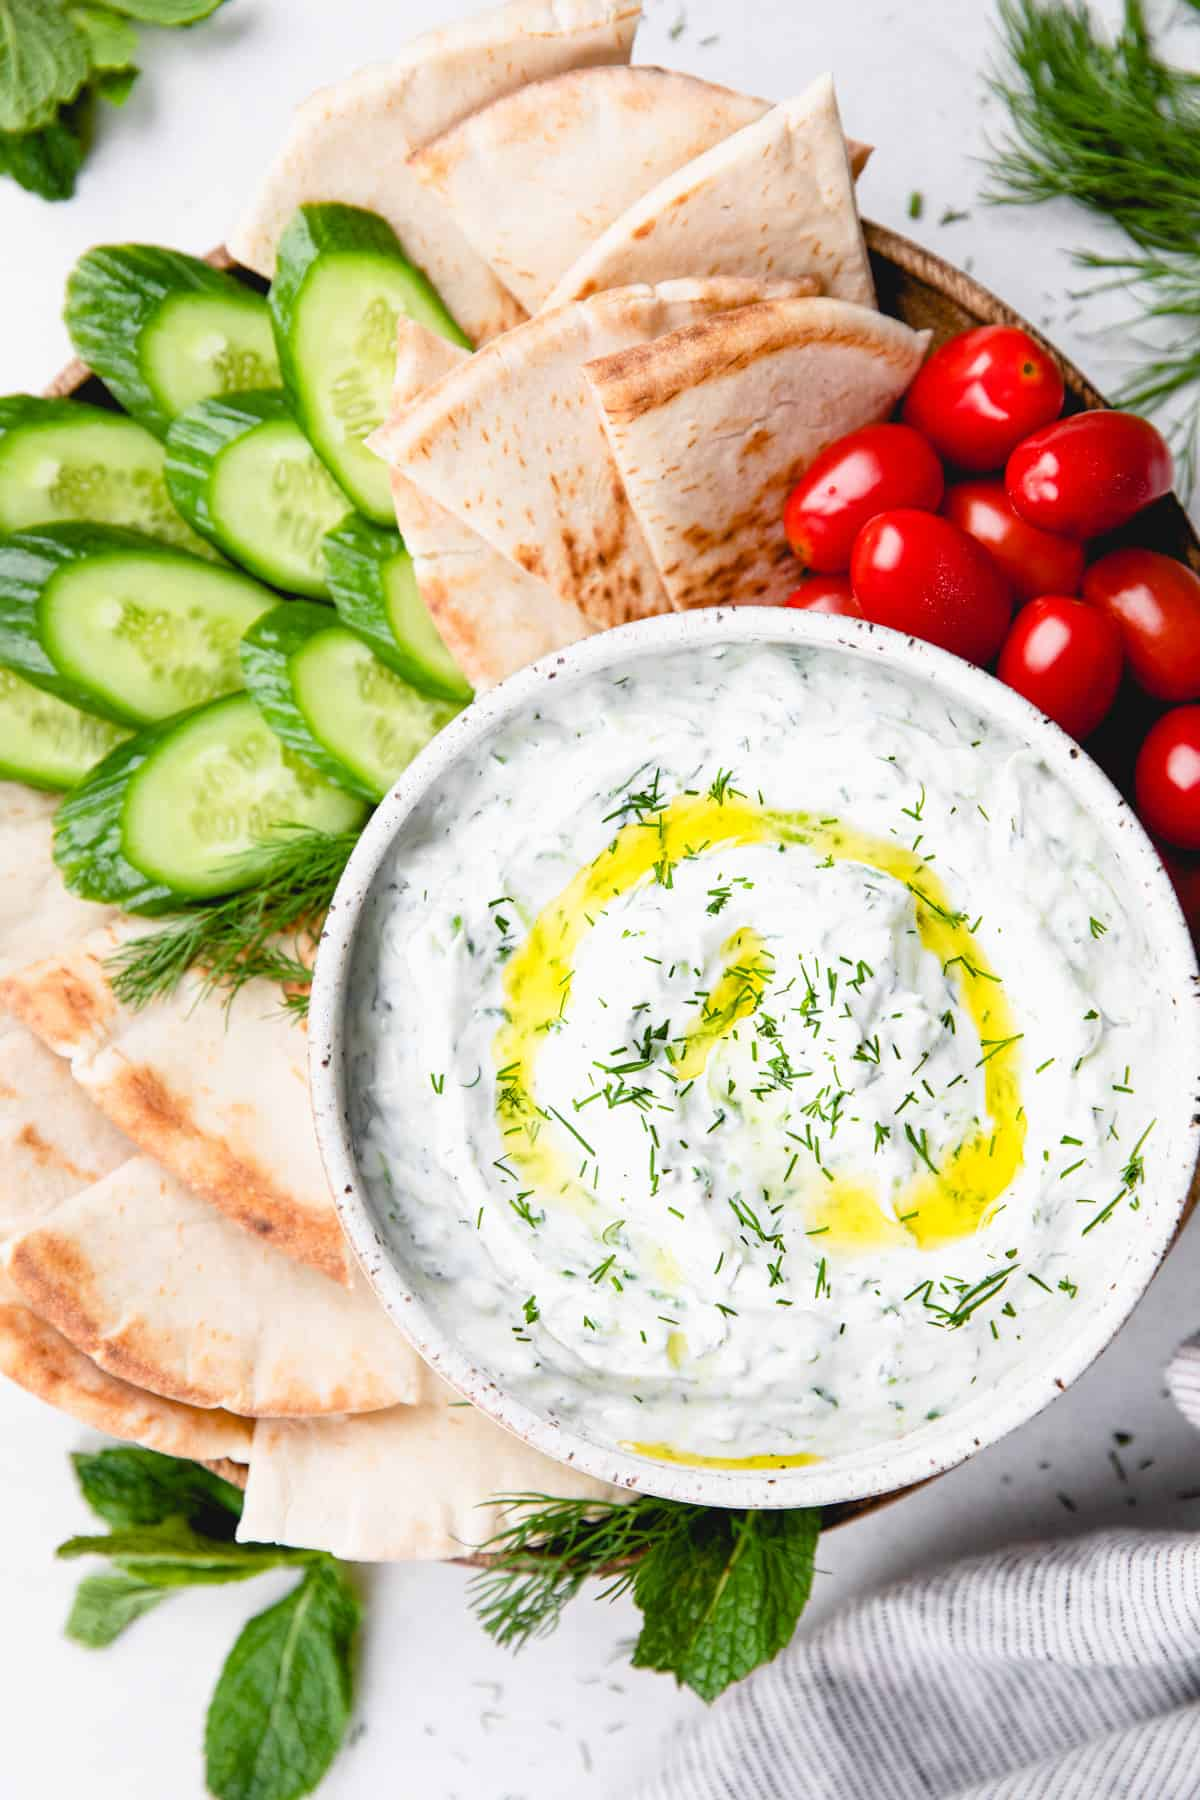 Tzatziki sauce, topped with olive oil and chopped dill, in a white bowl and vegetables and pita bread around it.